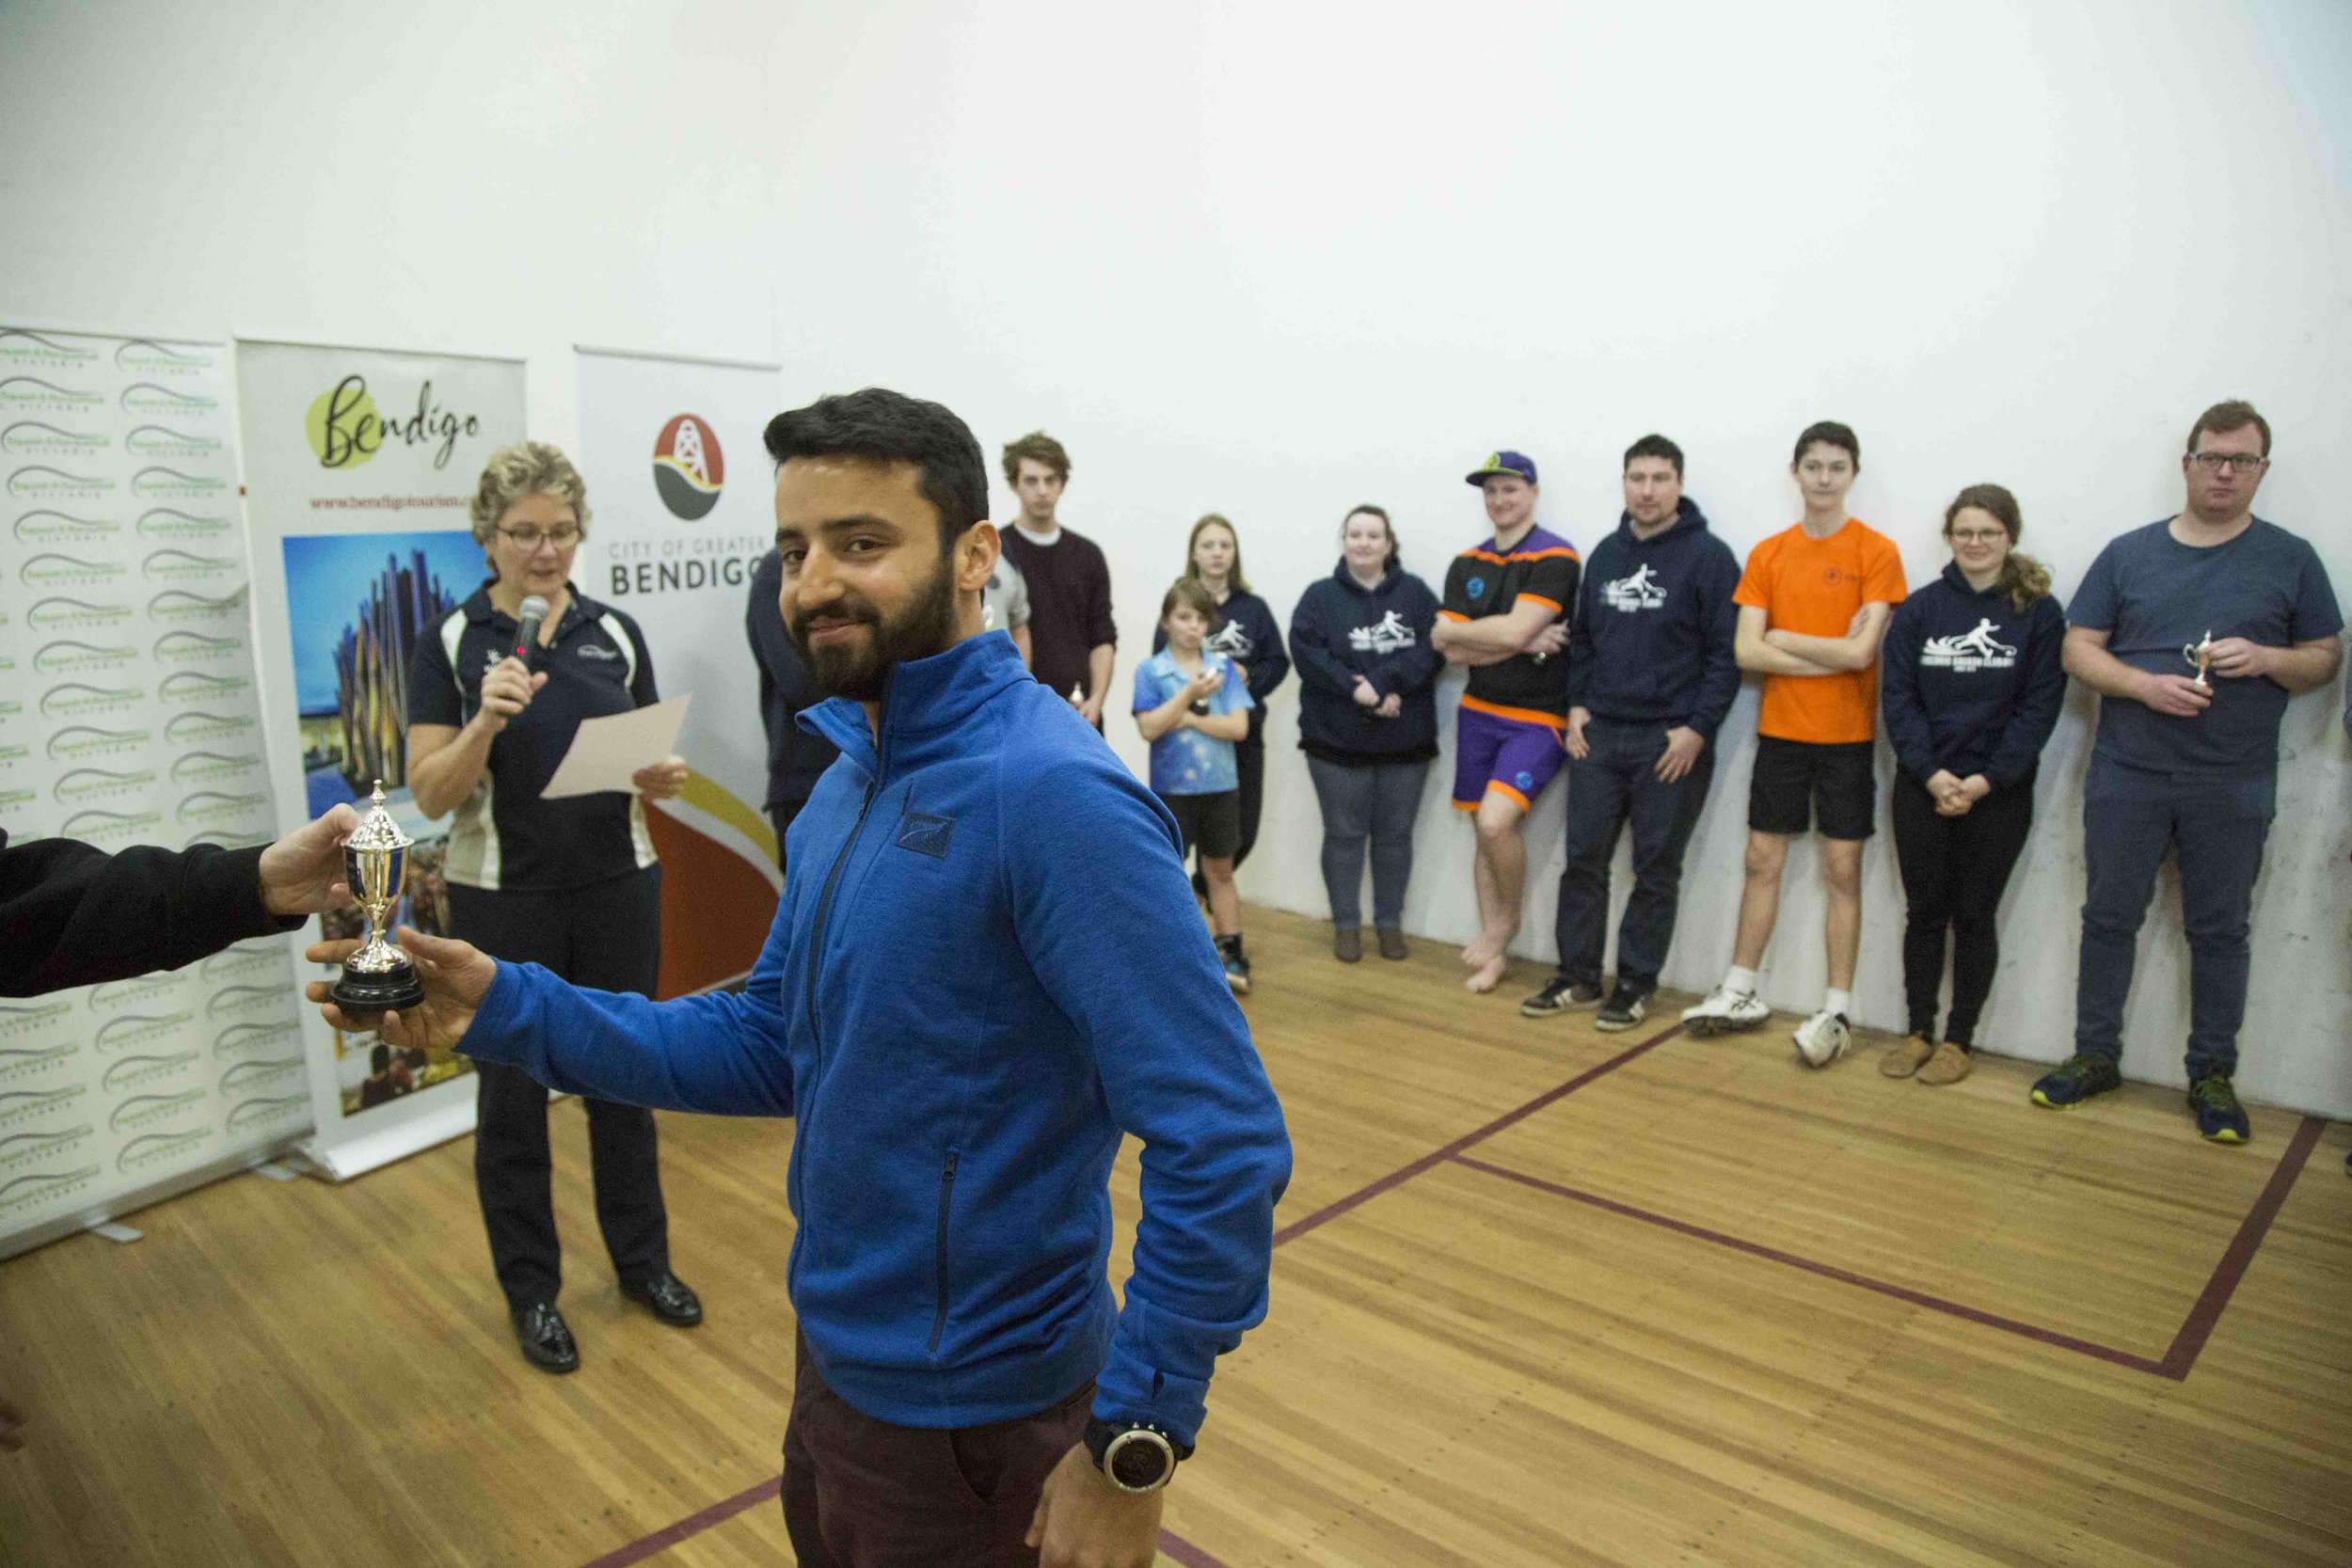 Bendigo Open Winners_13.jpg